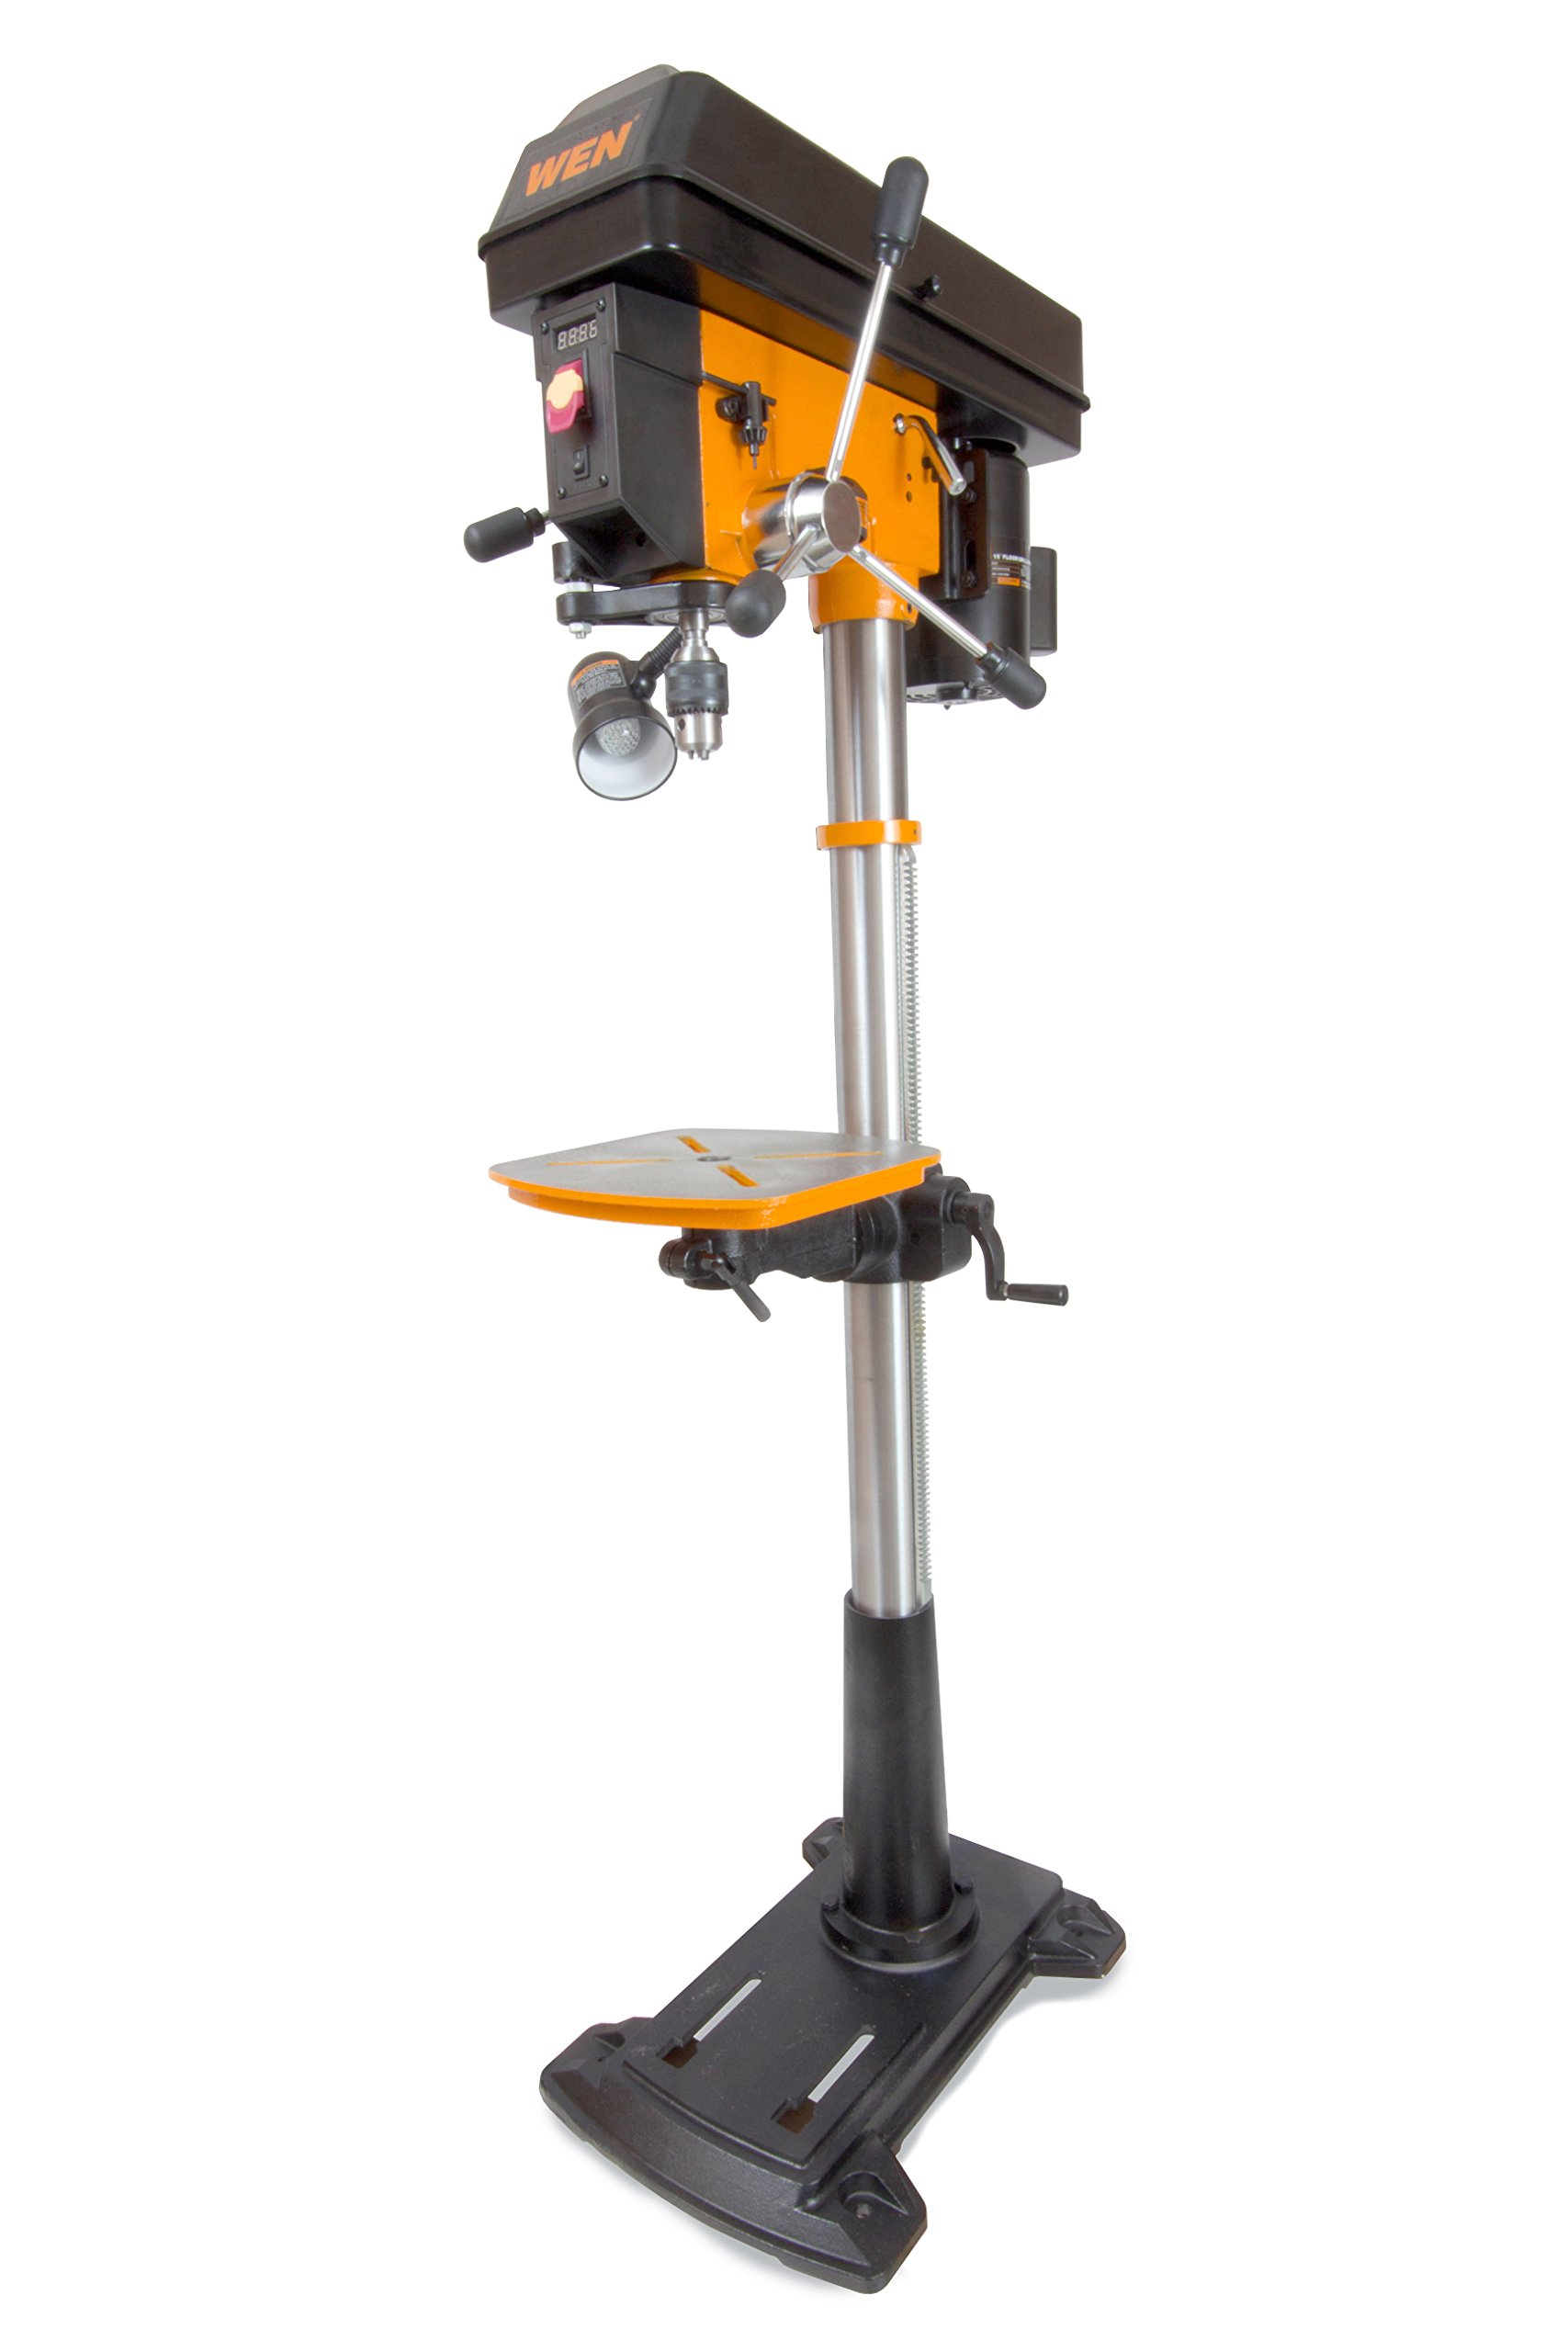 WEN 4225 8.6-Amp Variable Speed Floor Standing Drill Press, 15-Inch by WEN (Image #2)